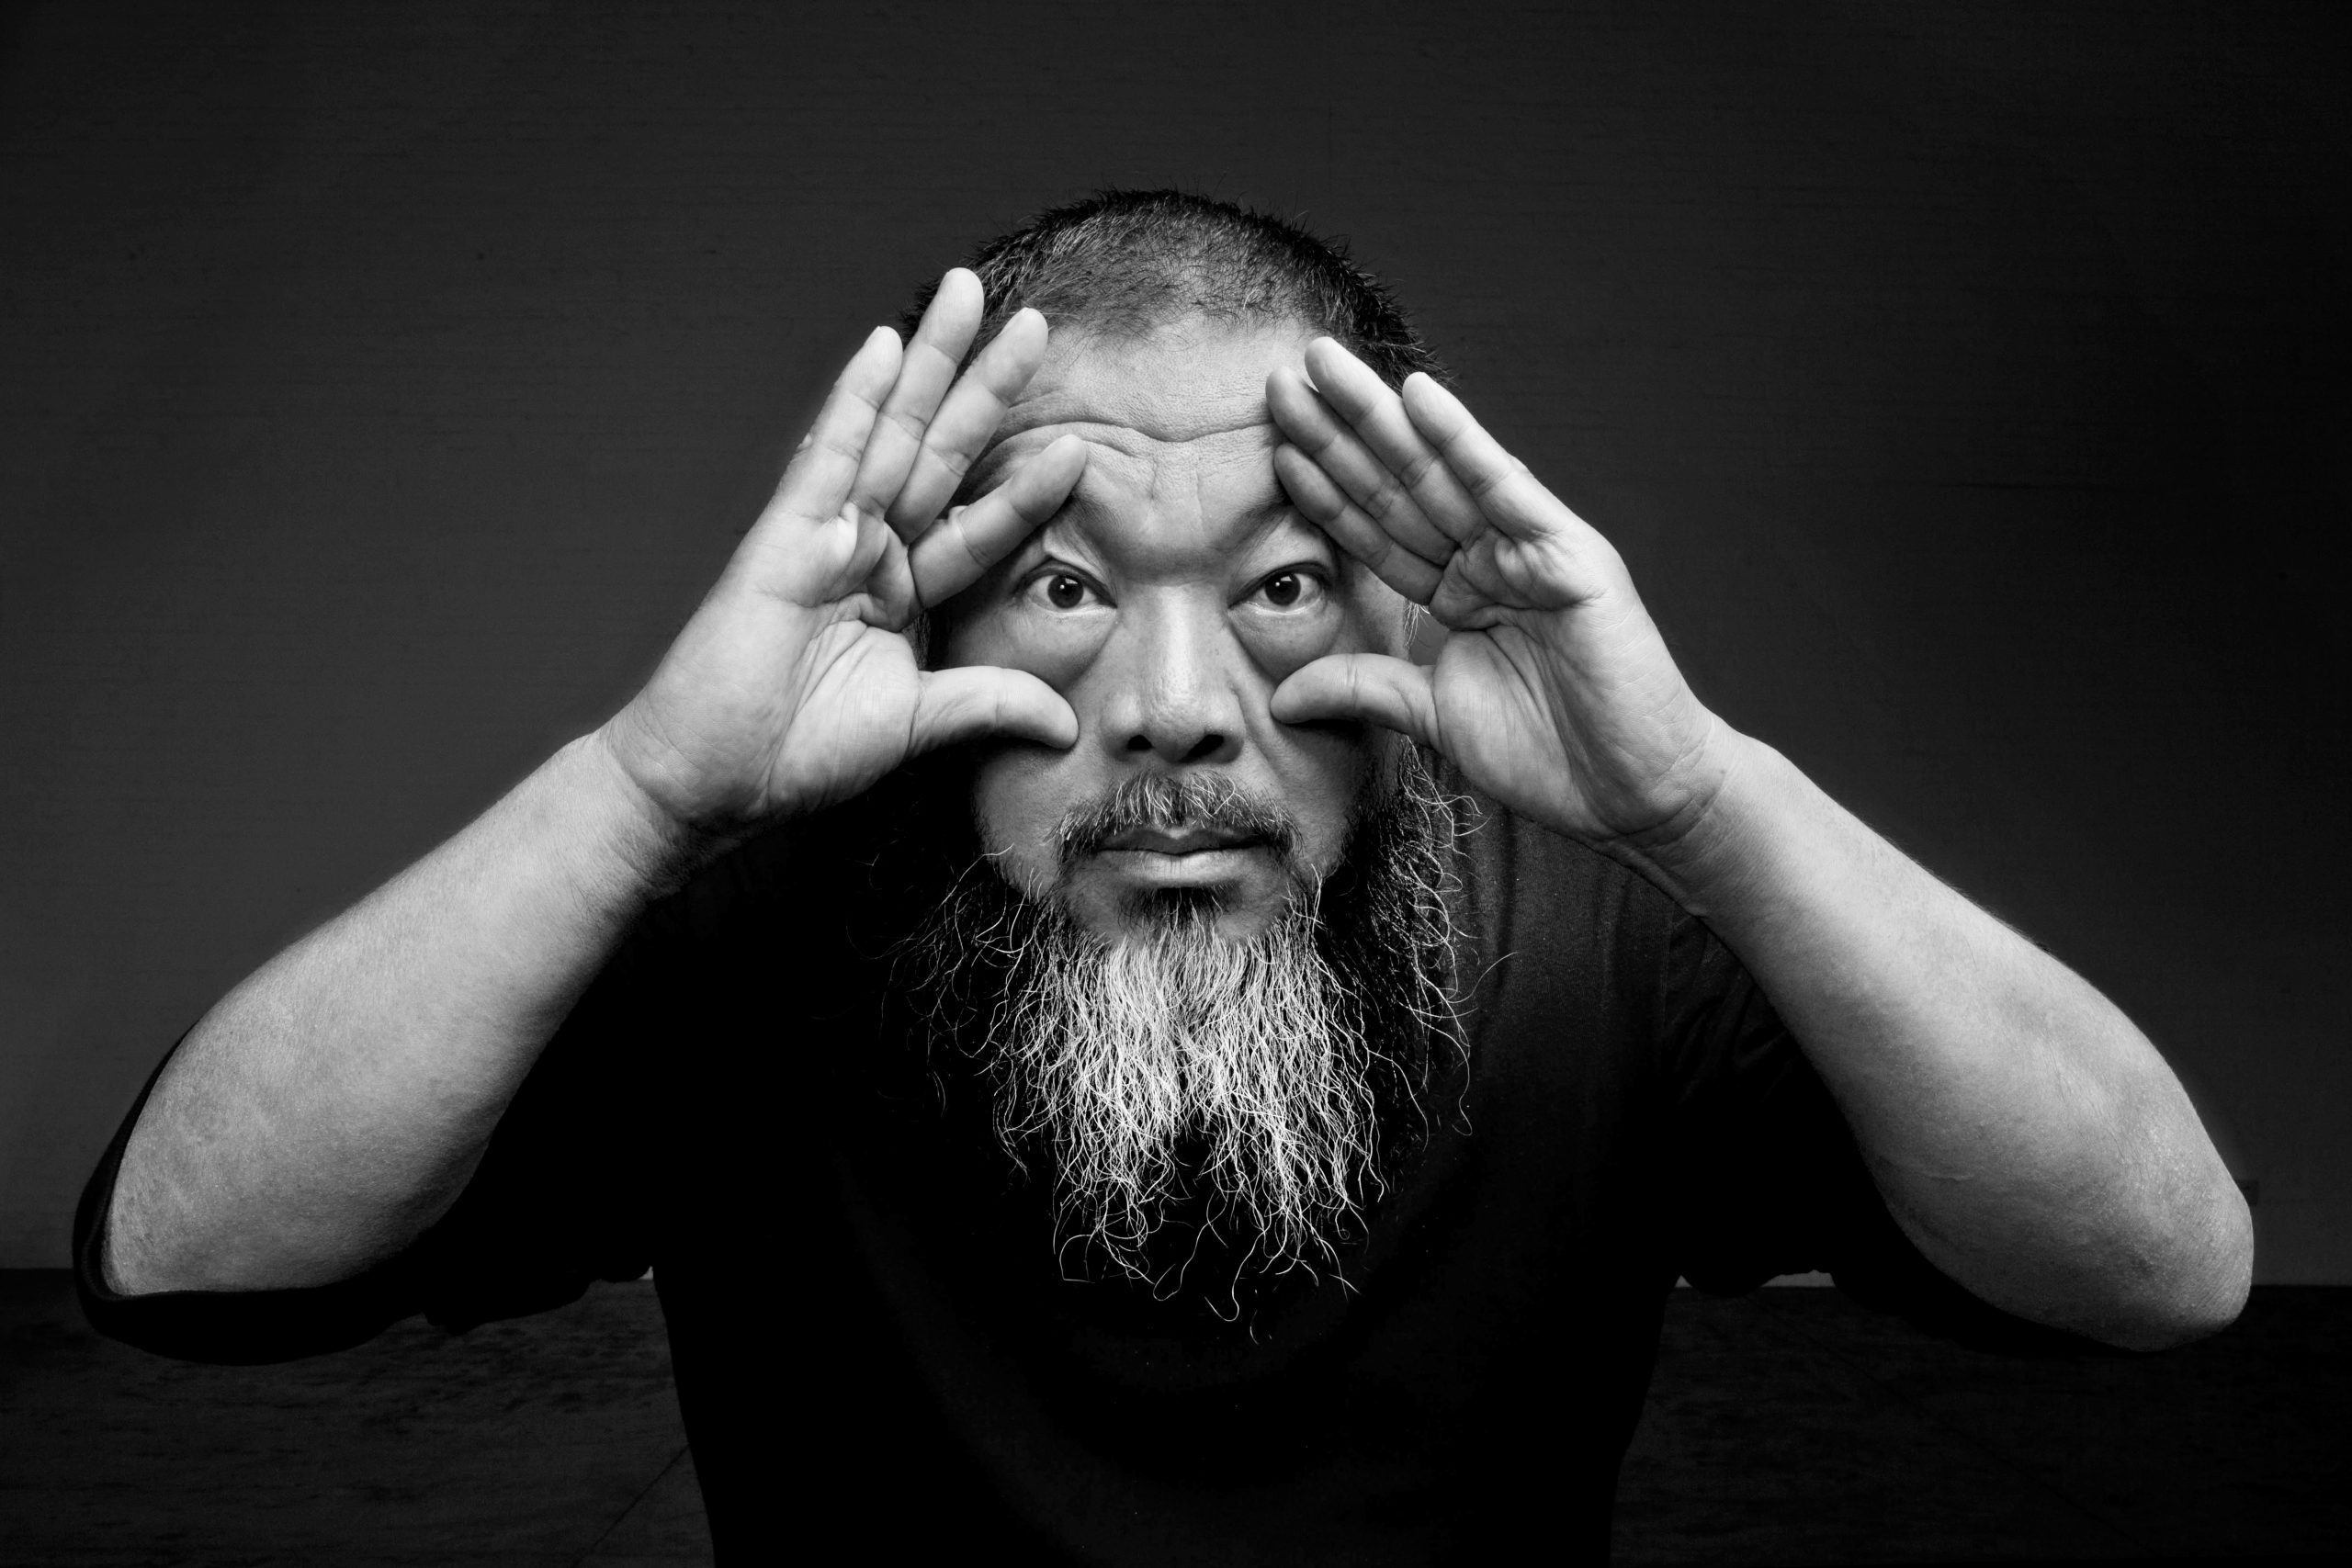 Internationally Renowned Artist Ai Weiwei Exhibition At Springfield Museums